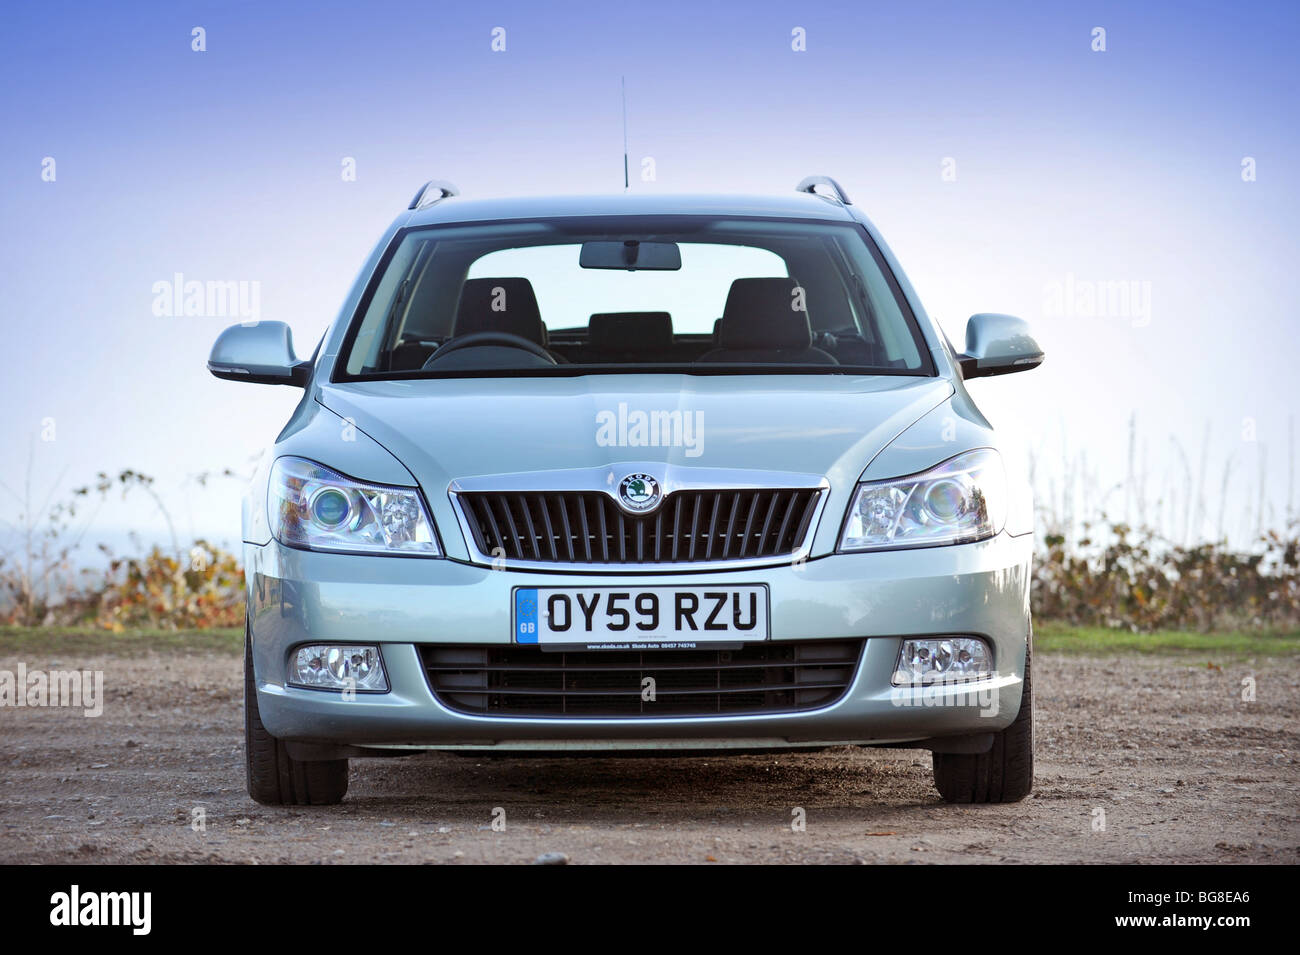 2009 Skoda Octavia diesel estate car front shot - Stock Image